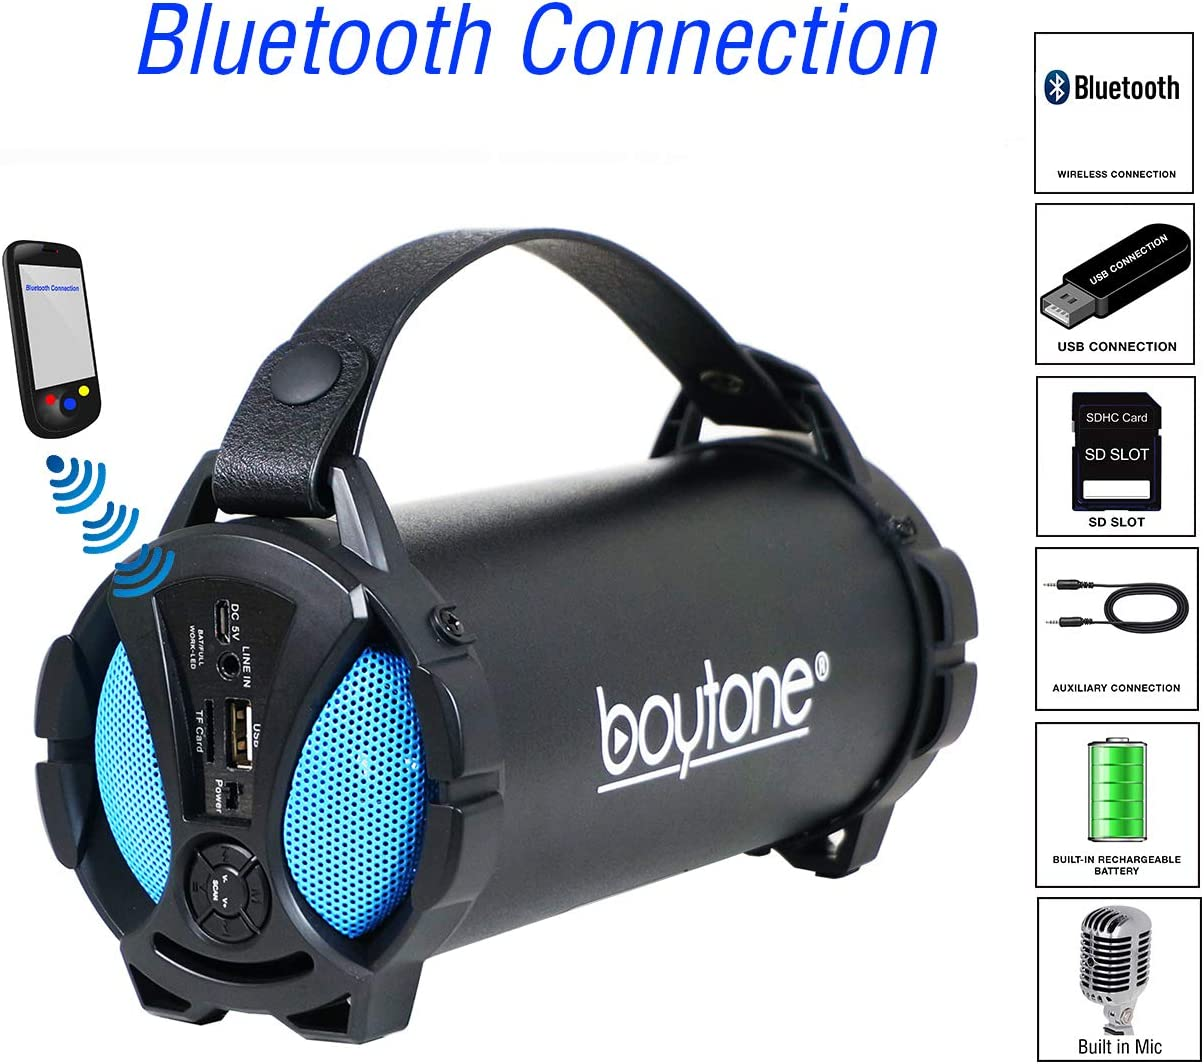 FM Radio AUX USB Charger Boytone BT-38BL Portable Bluetooth Indoor//Outdoor Speaker 2.1 Hi-Fi Cylinder Loud Speaker with Built-in 2x3 Sub and SD Card USB Built in Rechargeable Battery